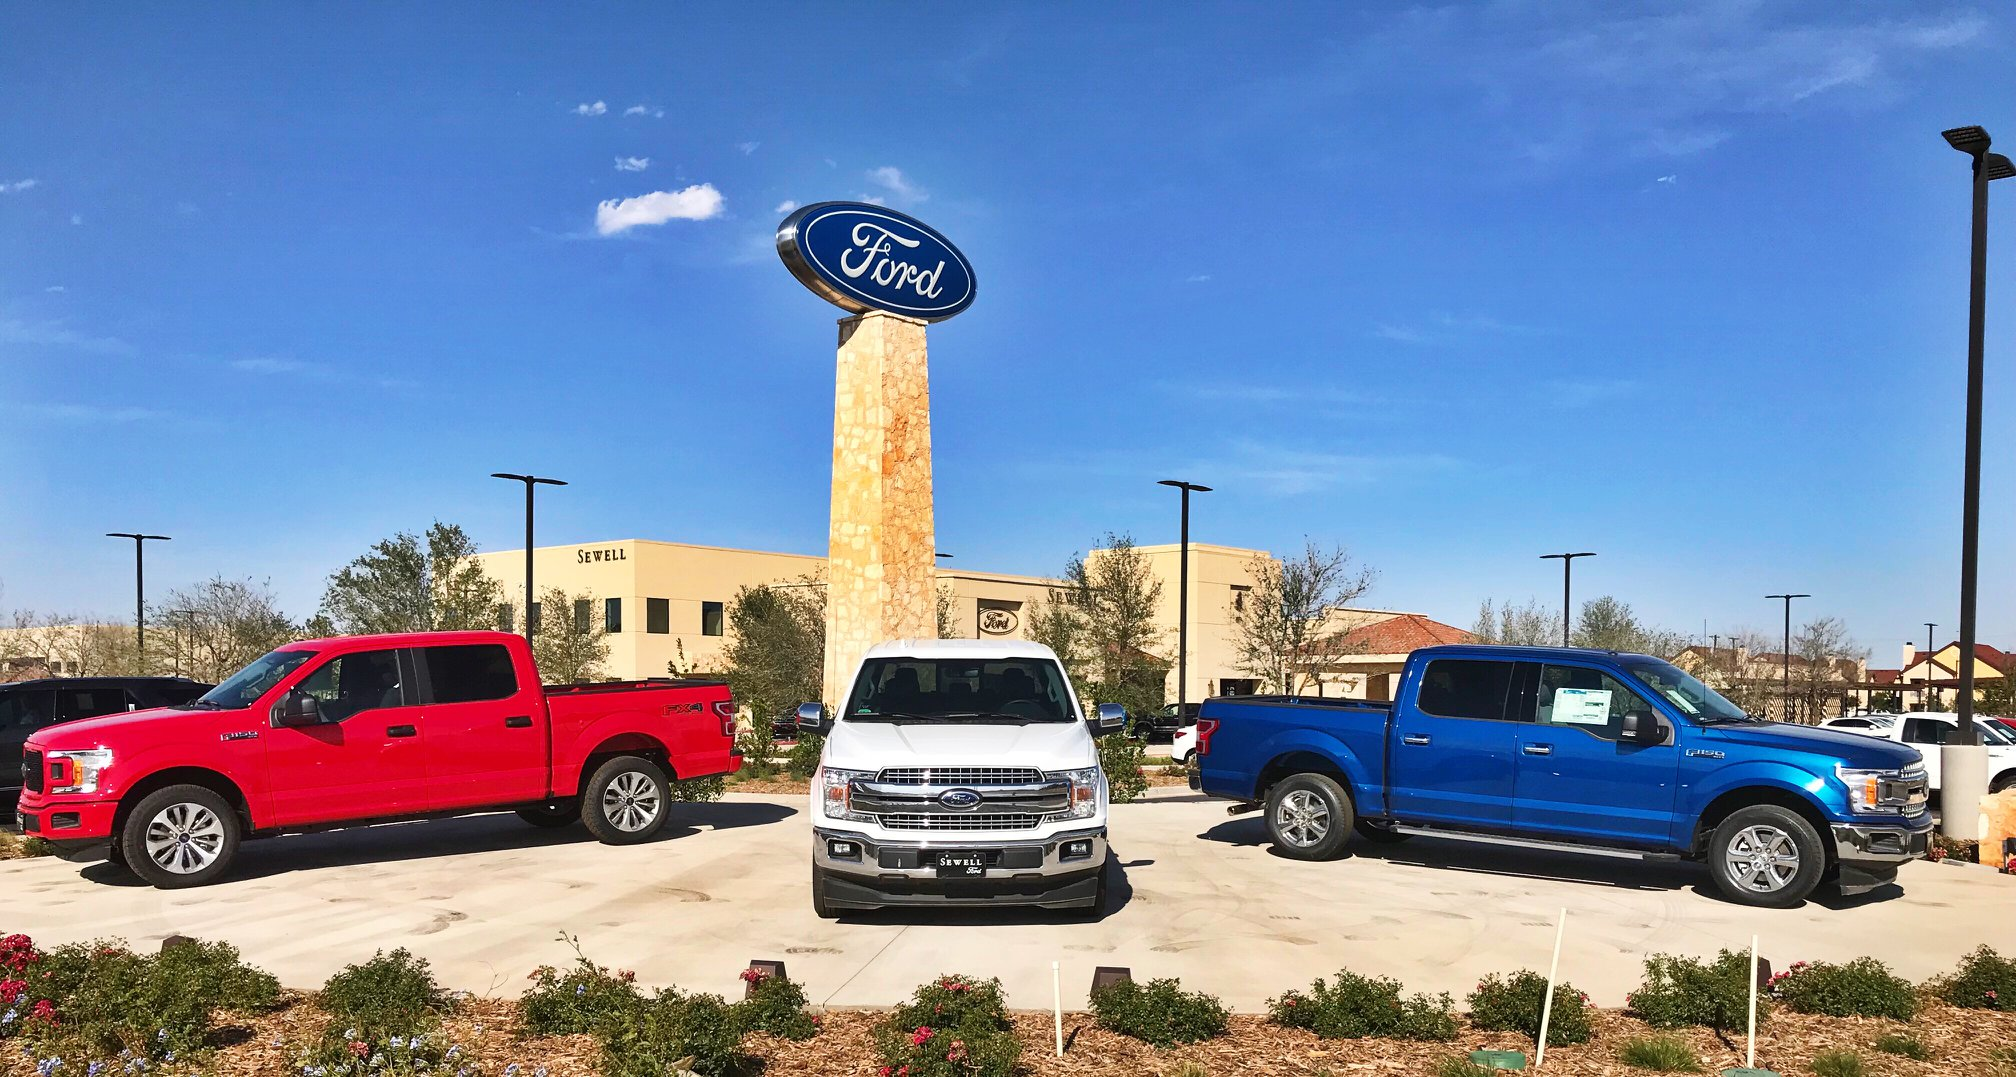 Sewell Ford Odessa Tx >> The Companies Join Sewell